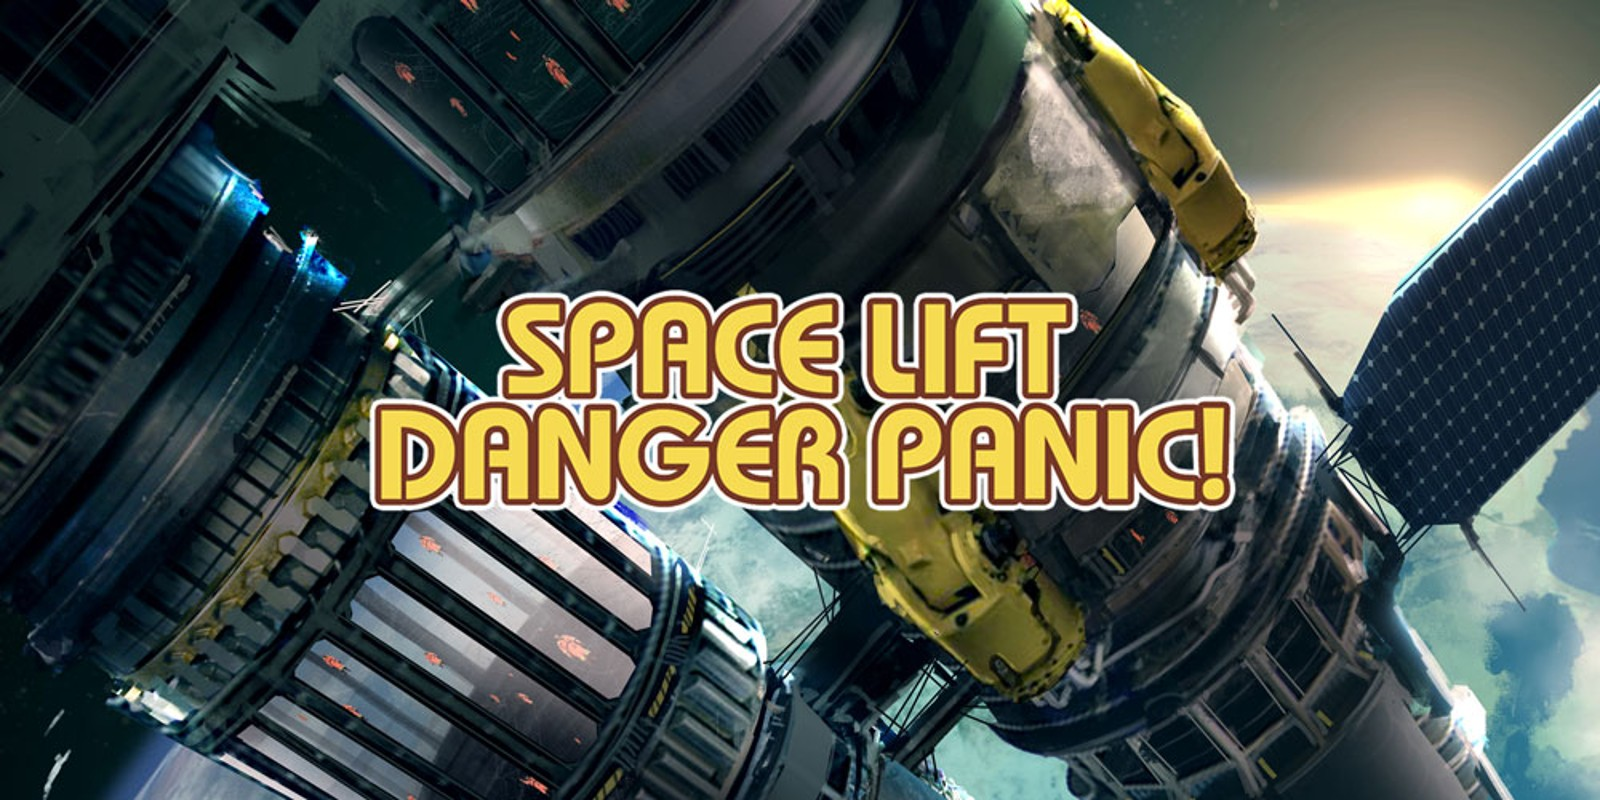 Space Lift Danger Panic